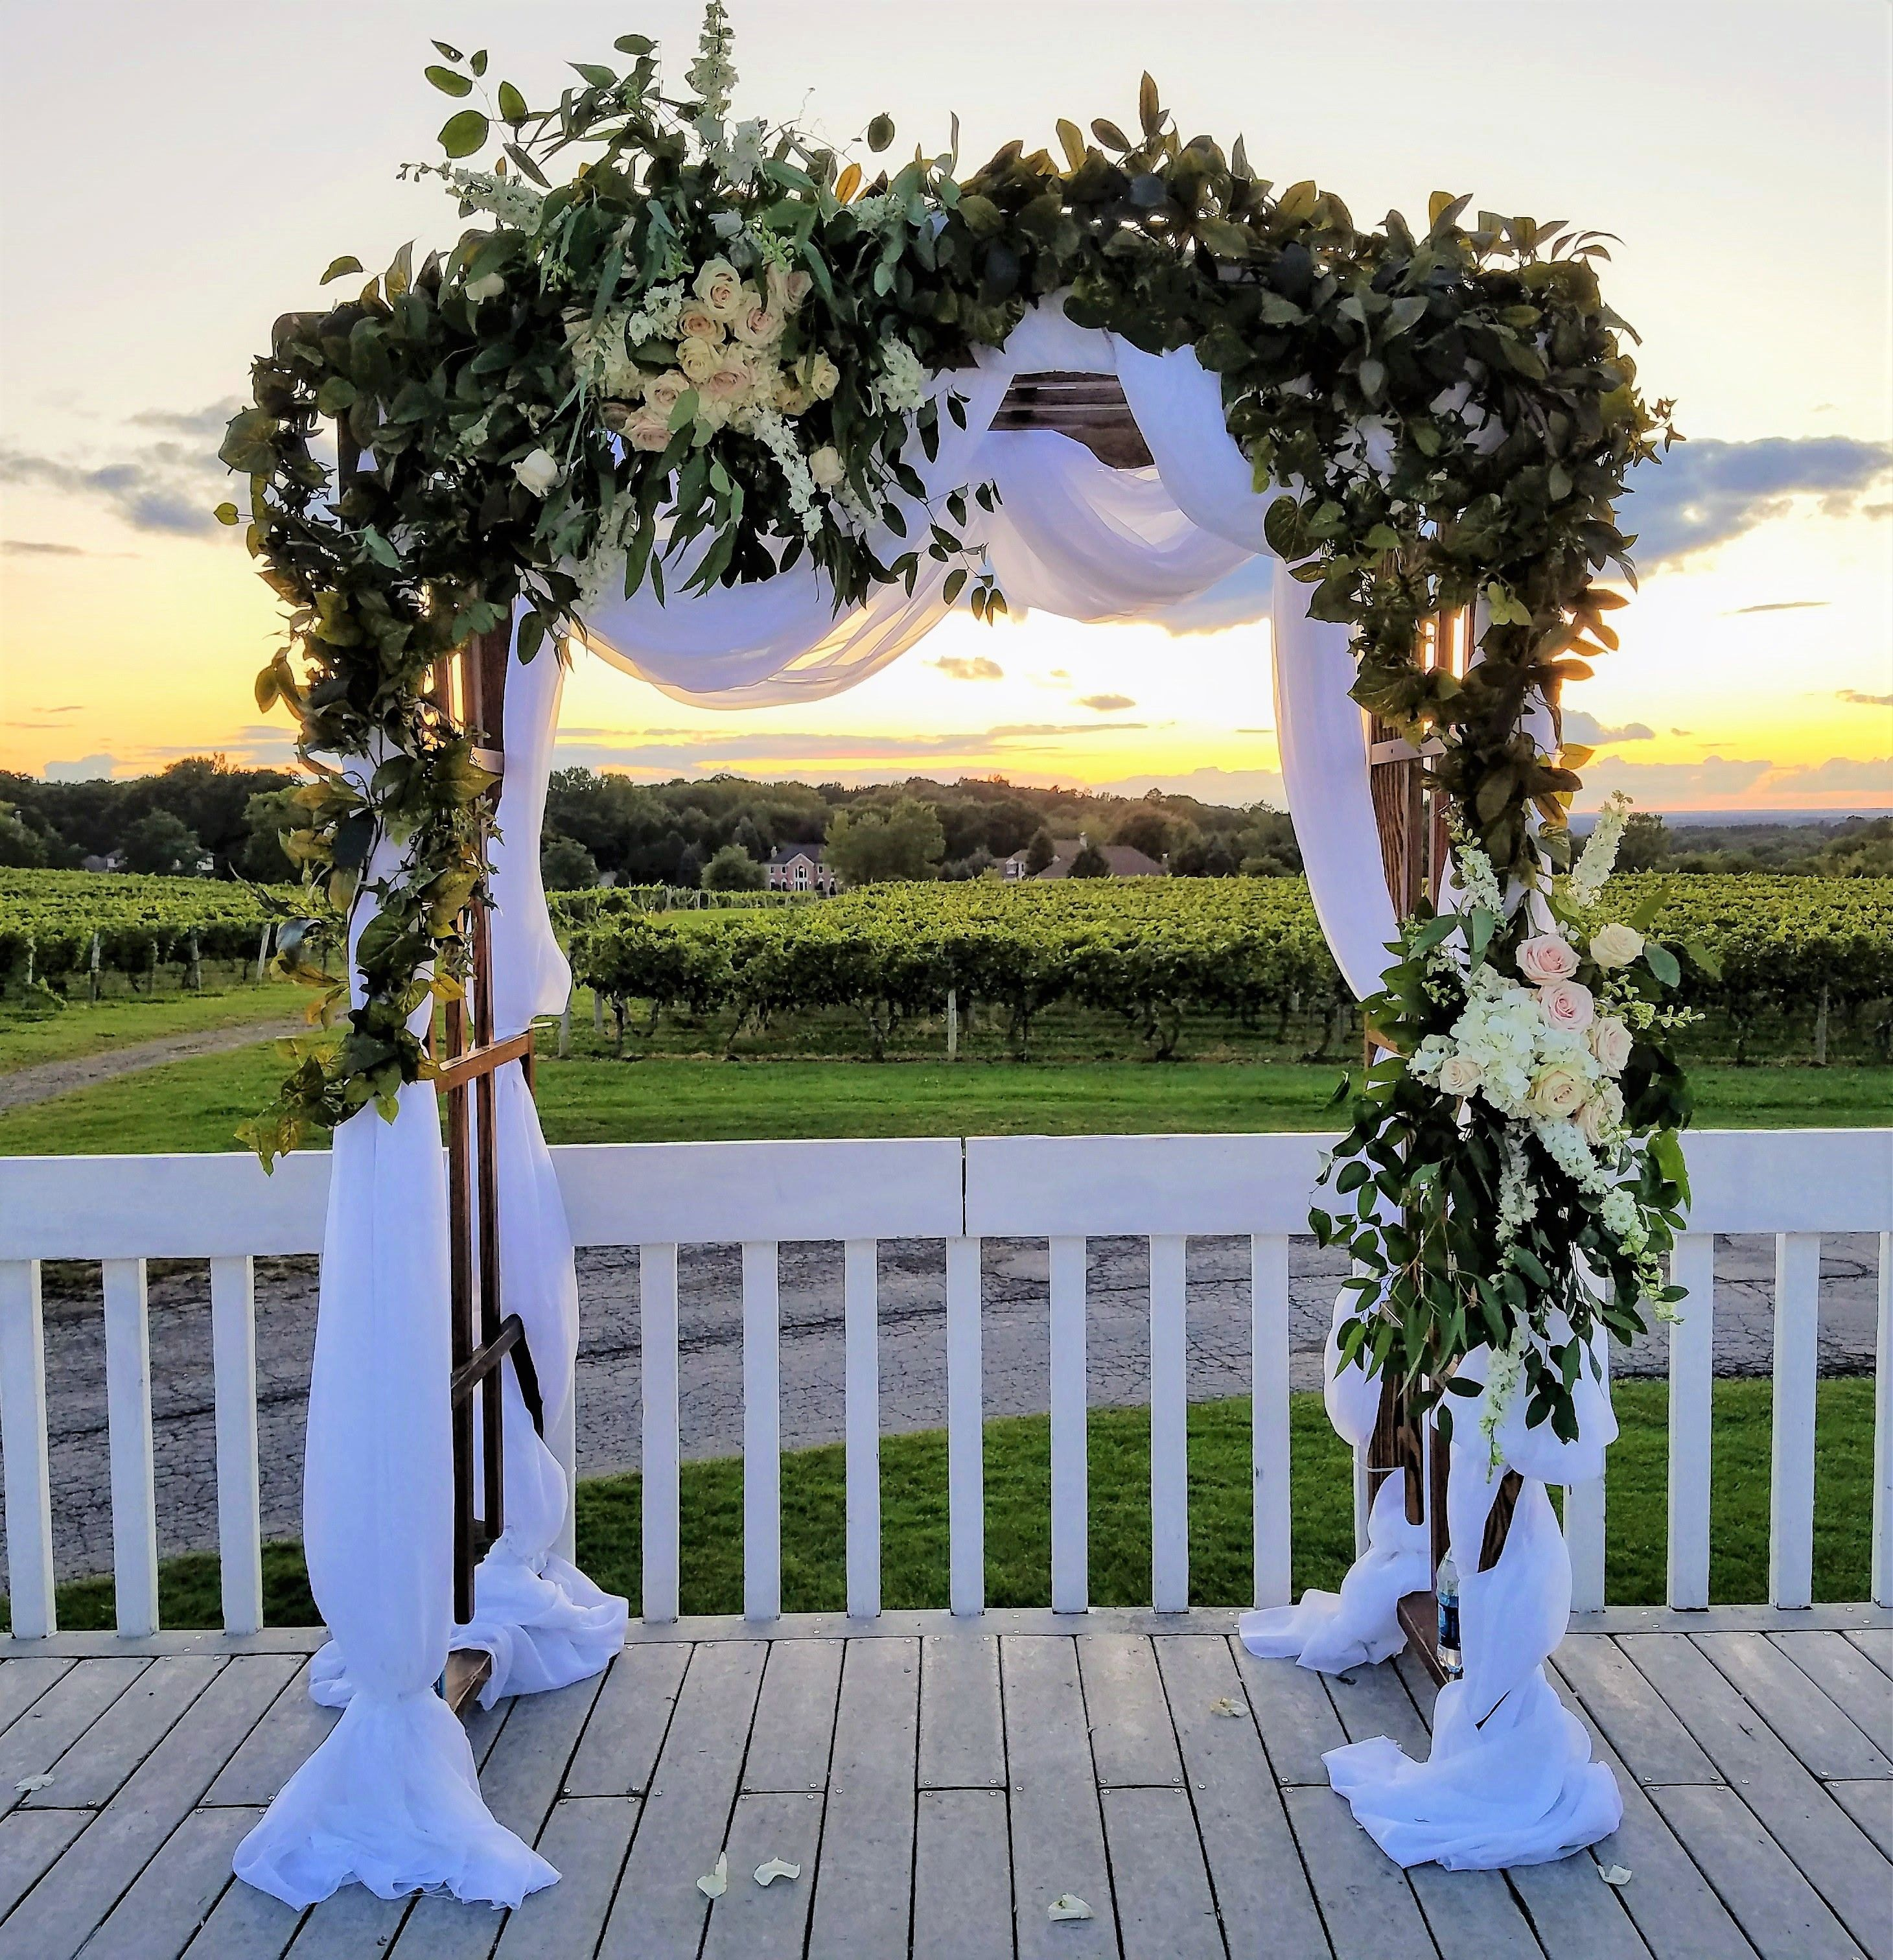 Our rustic arch with draping greenery and floral party